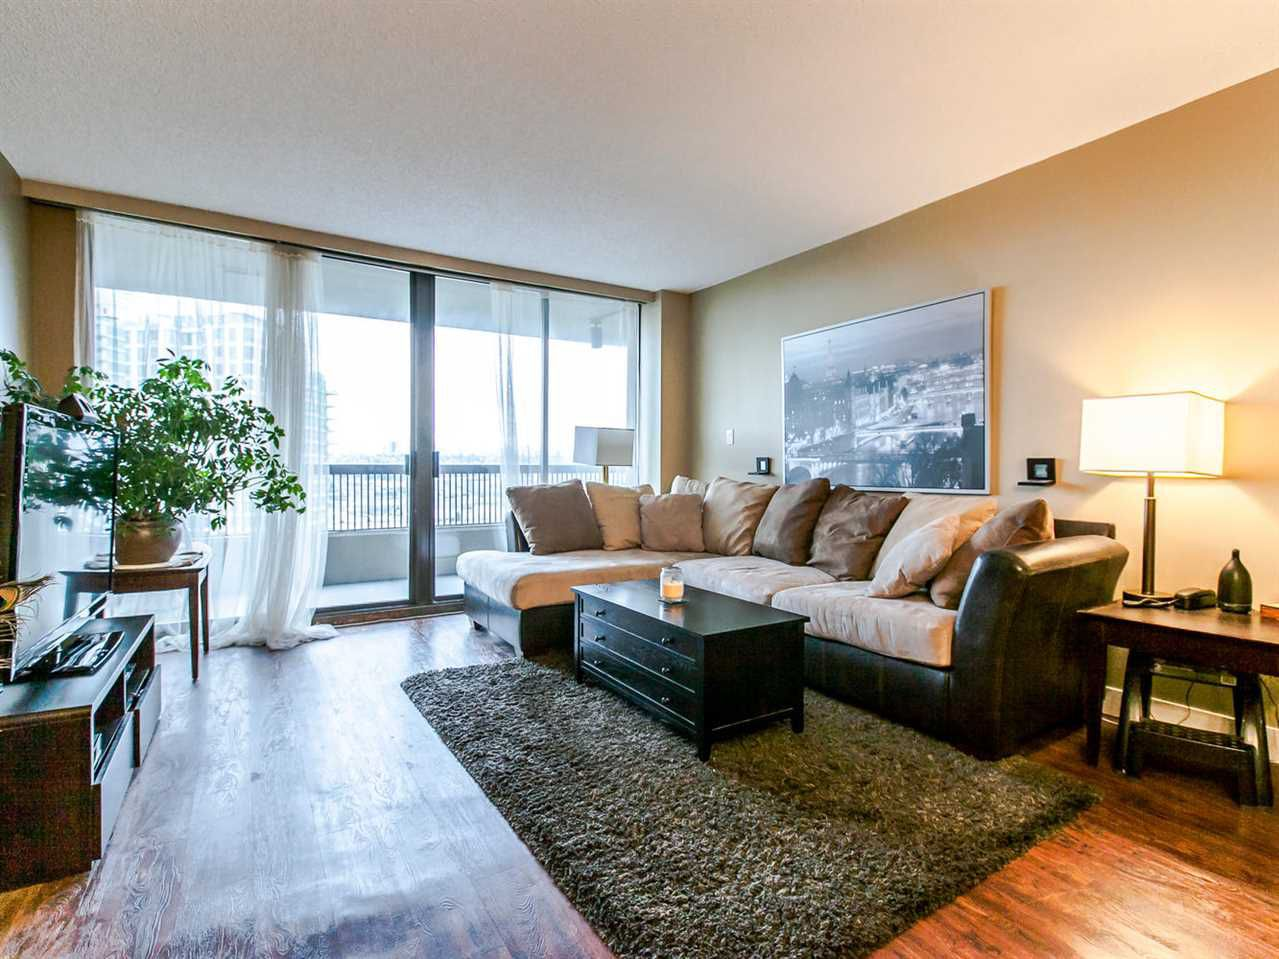 """Main Photo: 807 2041 BELLWOOD Avenue in Burnaby: Brentwood Park Condo for sale in """"ANOLA PLACE"""" (Burnaby North)  : MLS®# R2020940"""